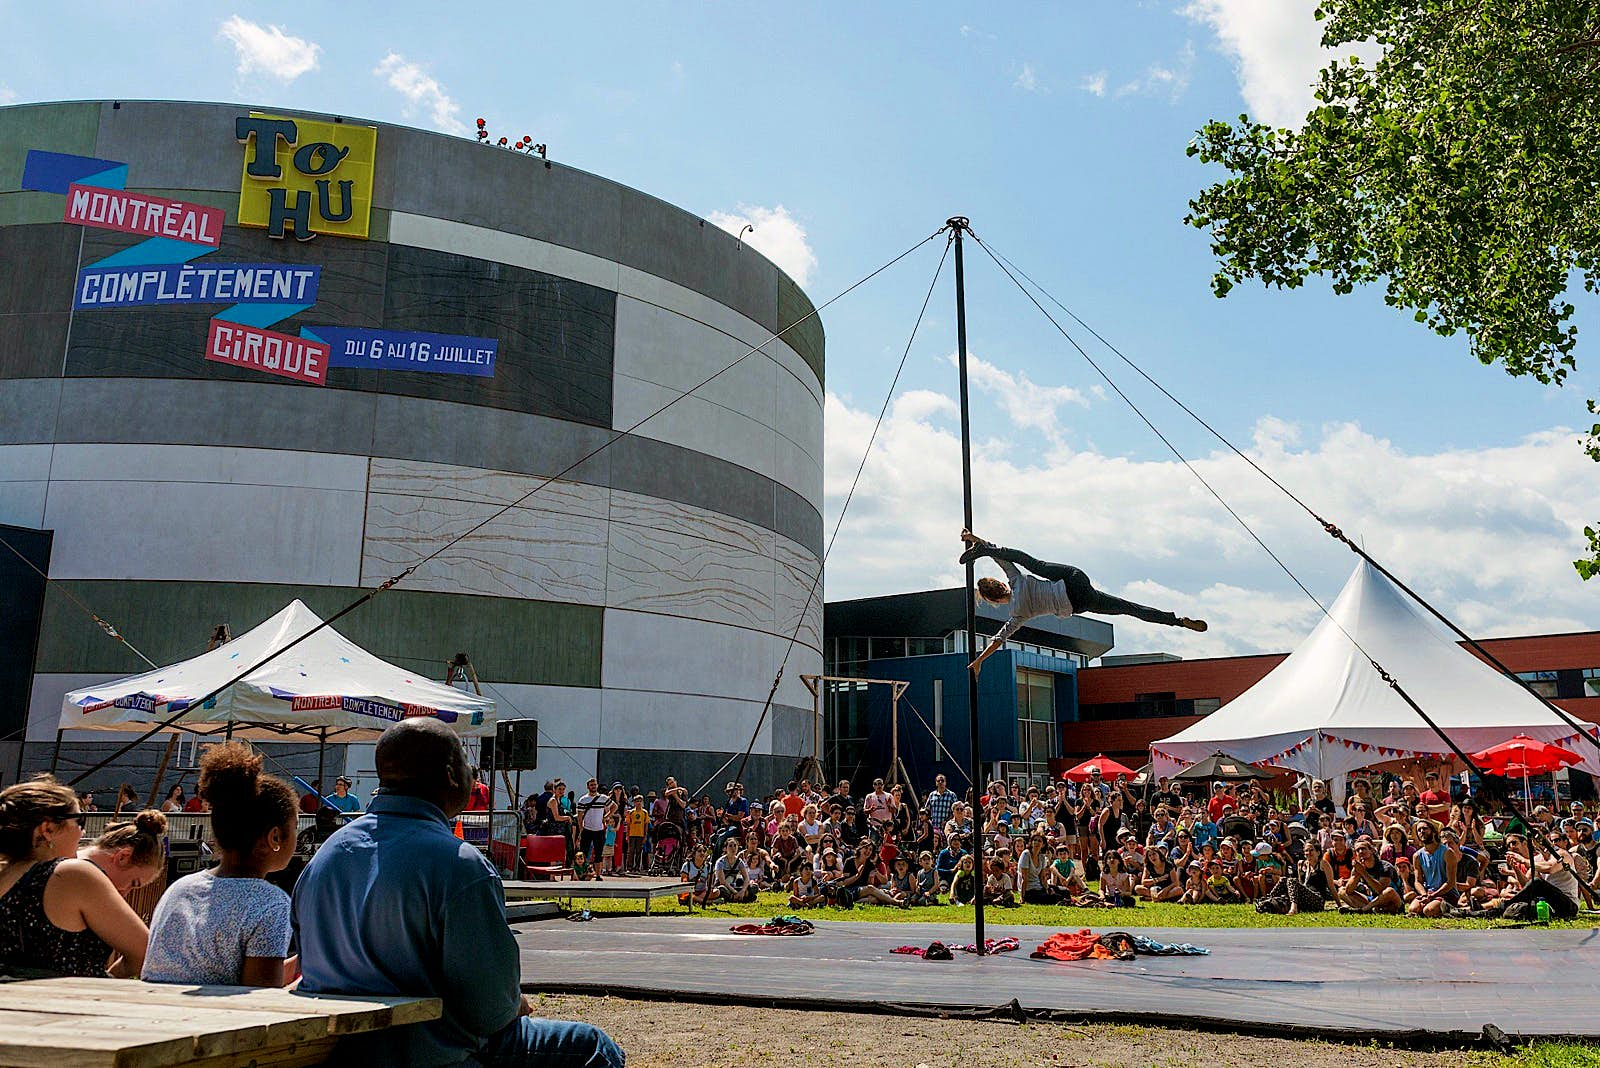 A circus acrobat performs on a vertical pole surrounded by tents and crowds, in front of the circular TOHU building in Montreal